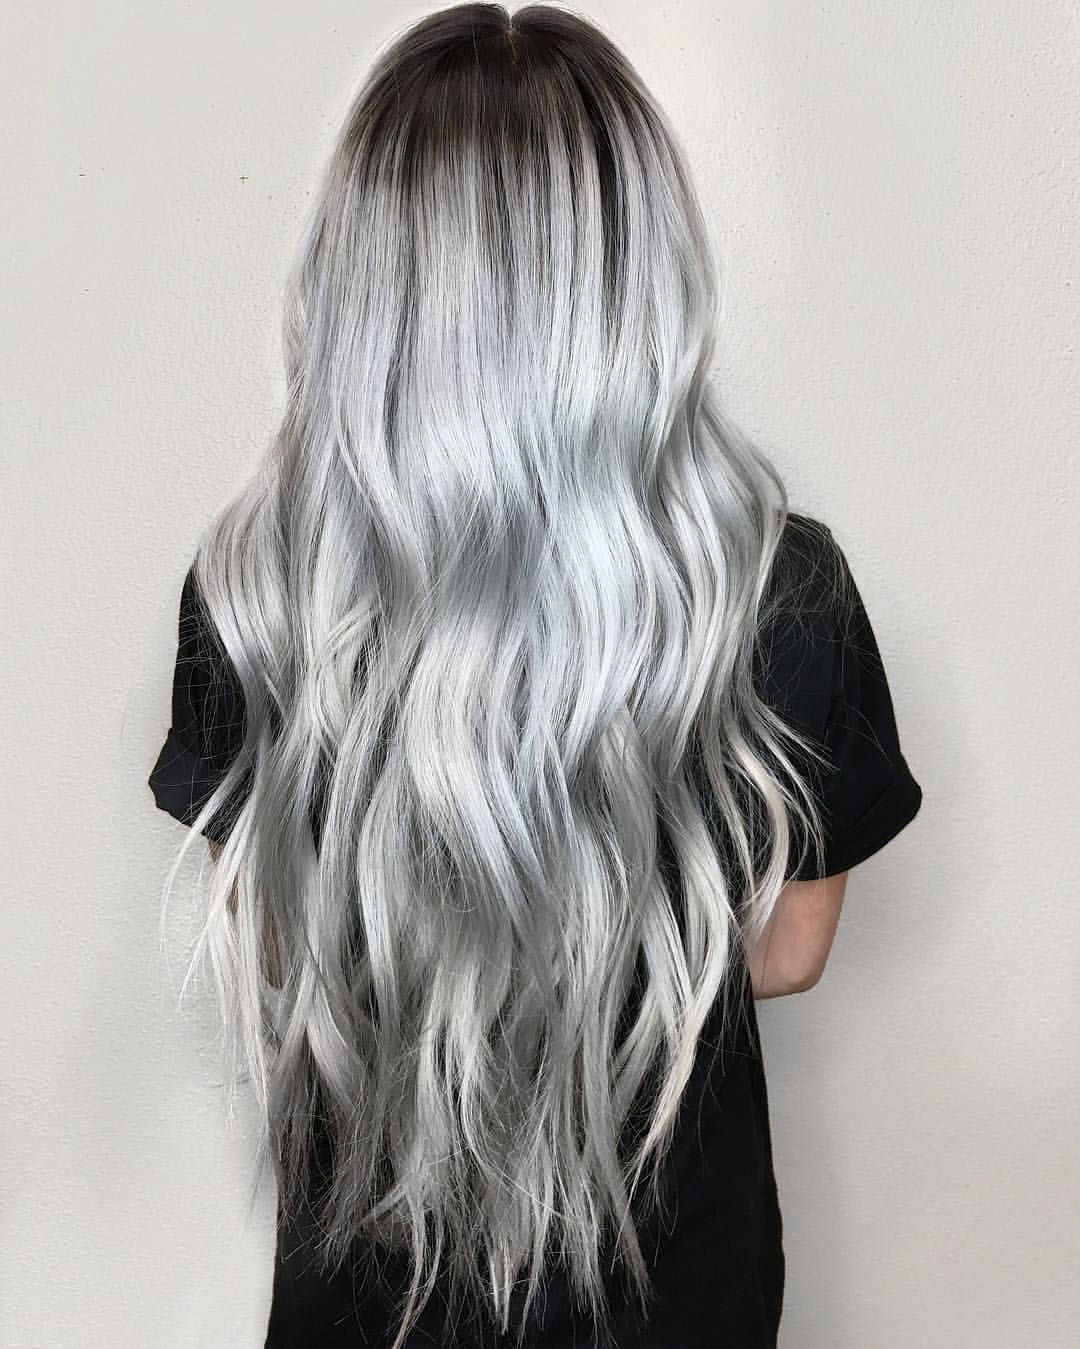 Gray Hair Wigs For African American Women Embracing Gray Hair At 30 Hair Treatment For White Hair Grey Hair At 25 Female Extra Long Wigs Couture Wigs